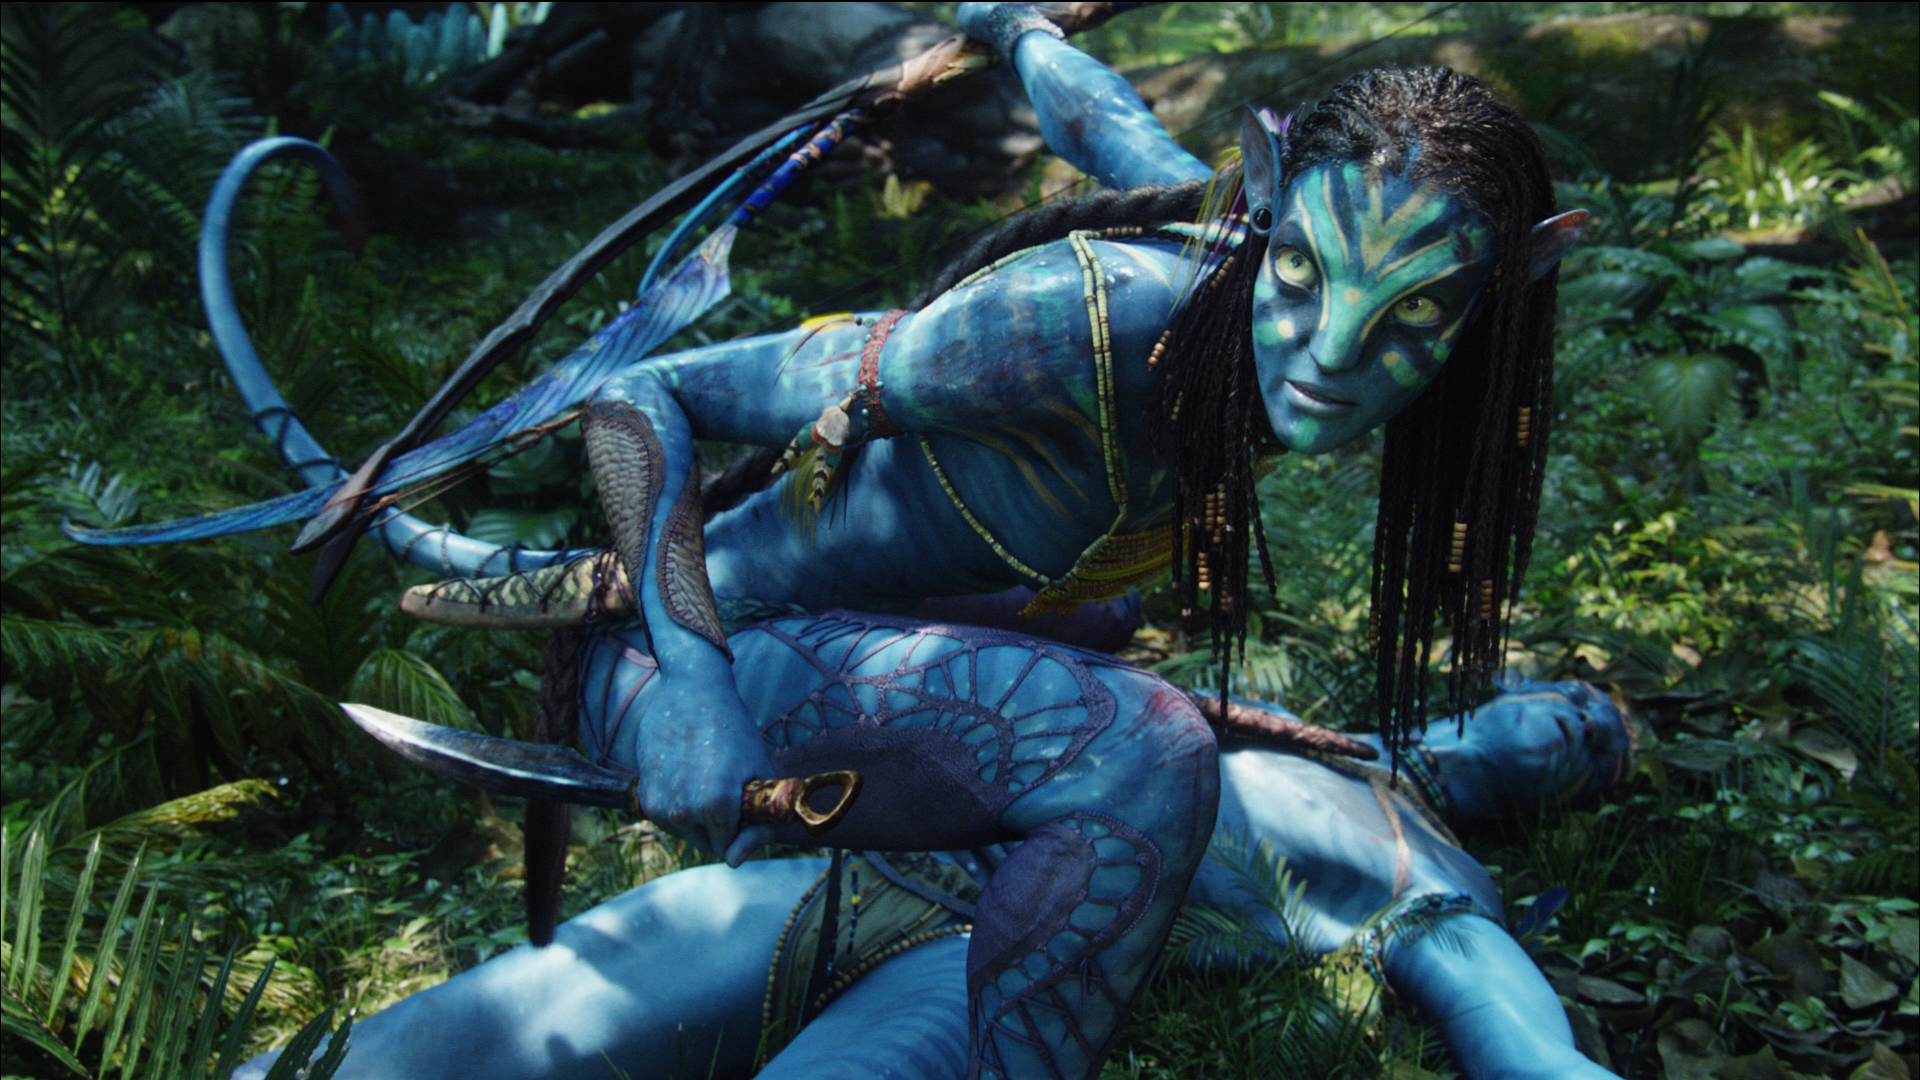 original avatar hd wallpapers for all avatar wallpaper fans | leawo